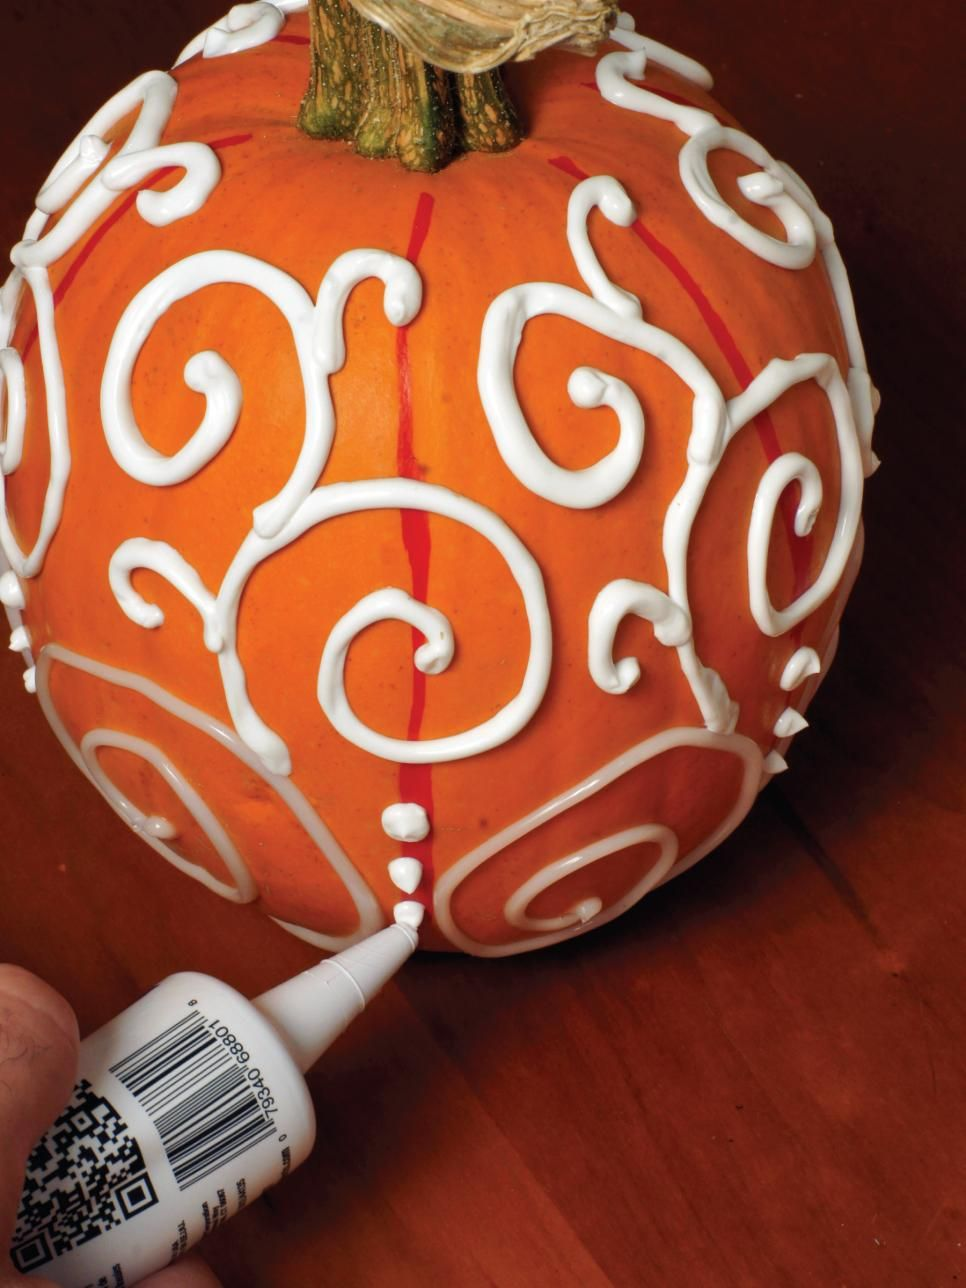 DIY Halloween Decor: Make a Modern Swirly Pumpkin